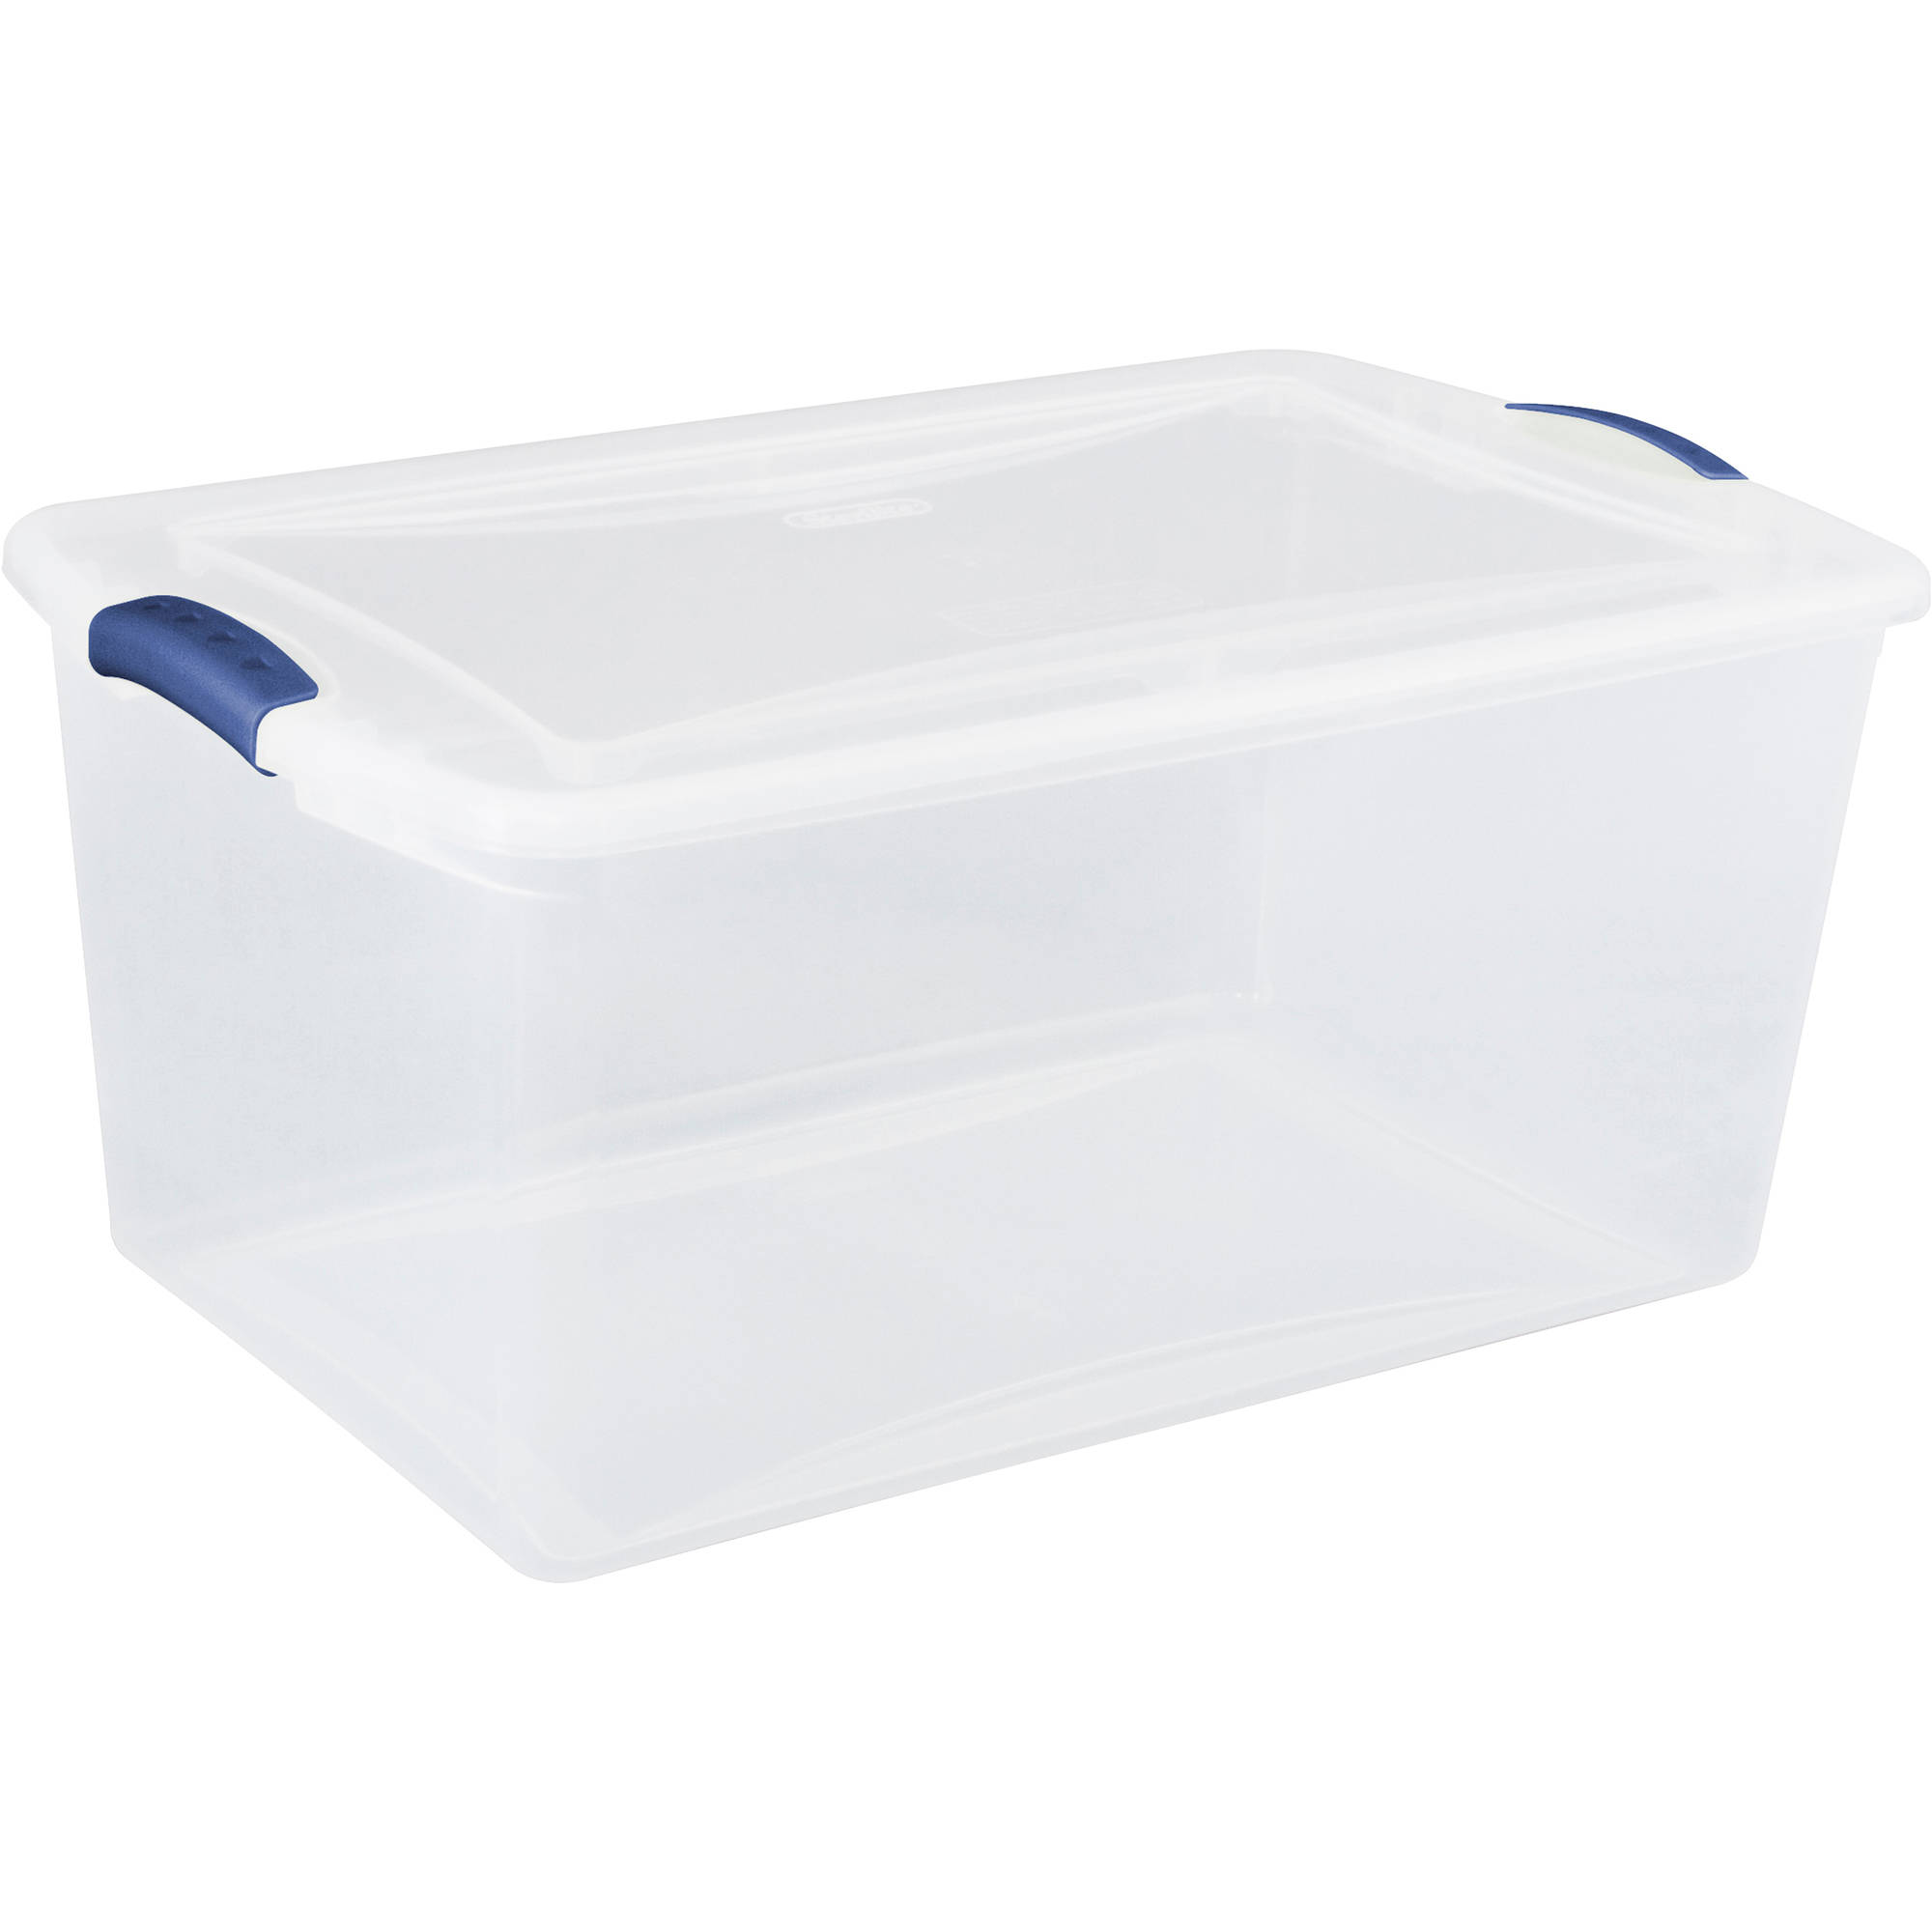 Sterilite 66 Quart Latch Box- Blue Eclipse, Set of 6